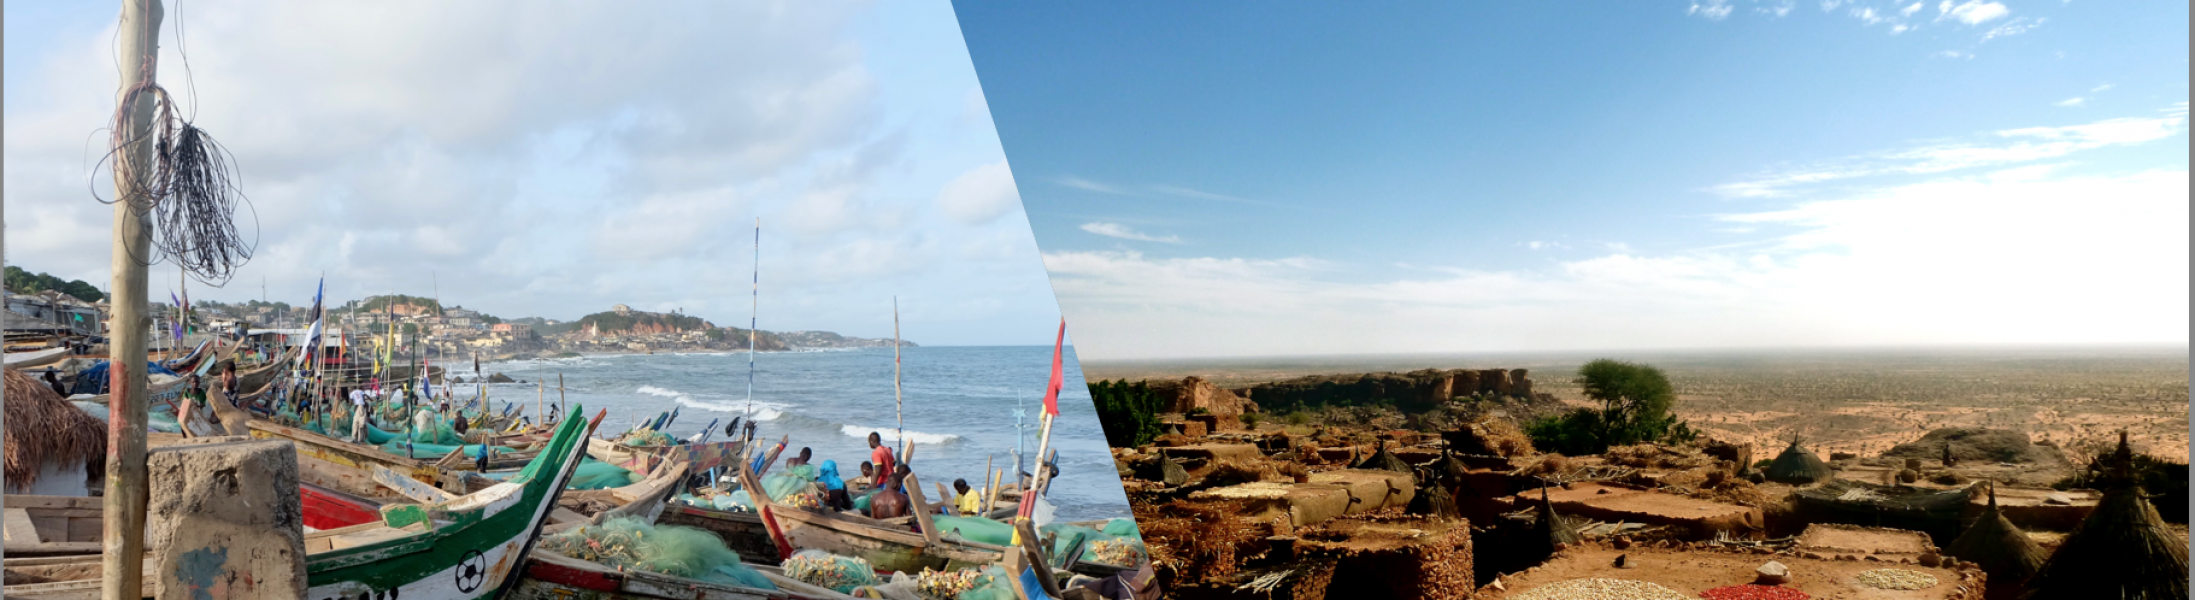 North and South Ghana banner photo